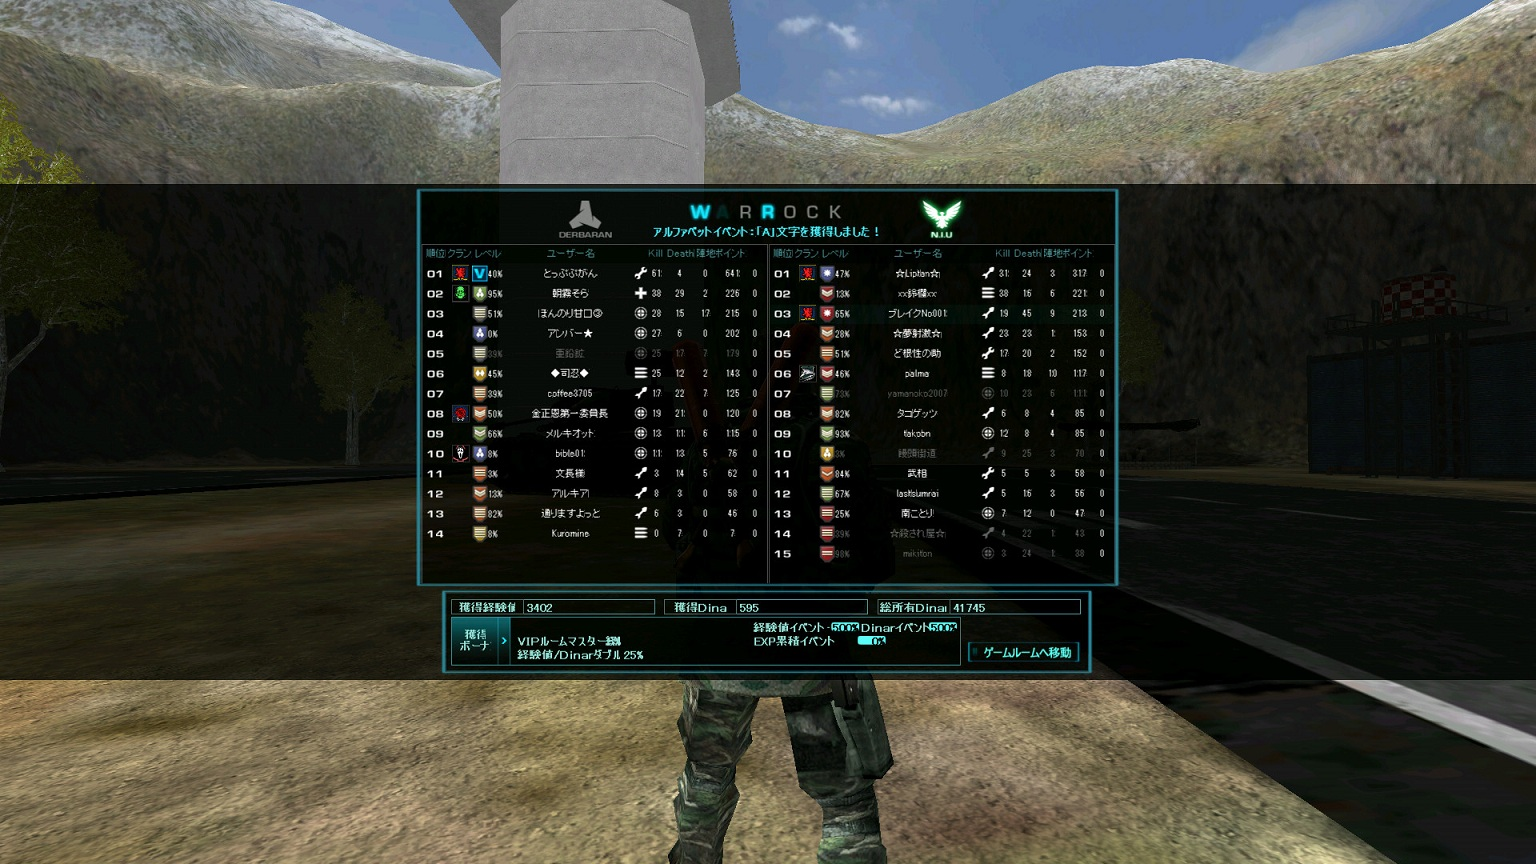 screenshot_277.jpg